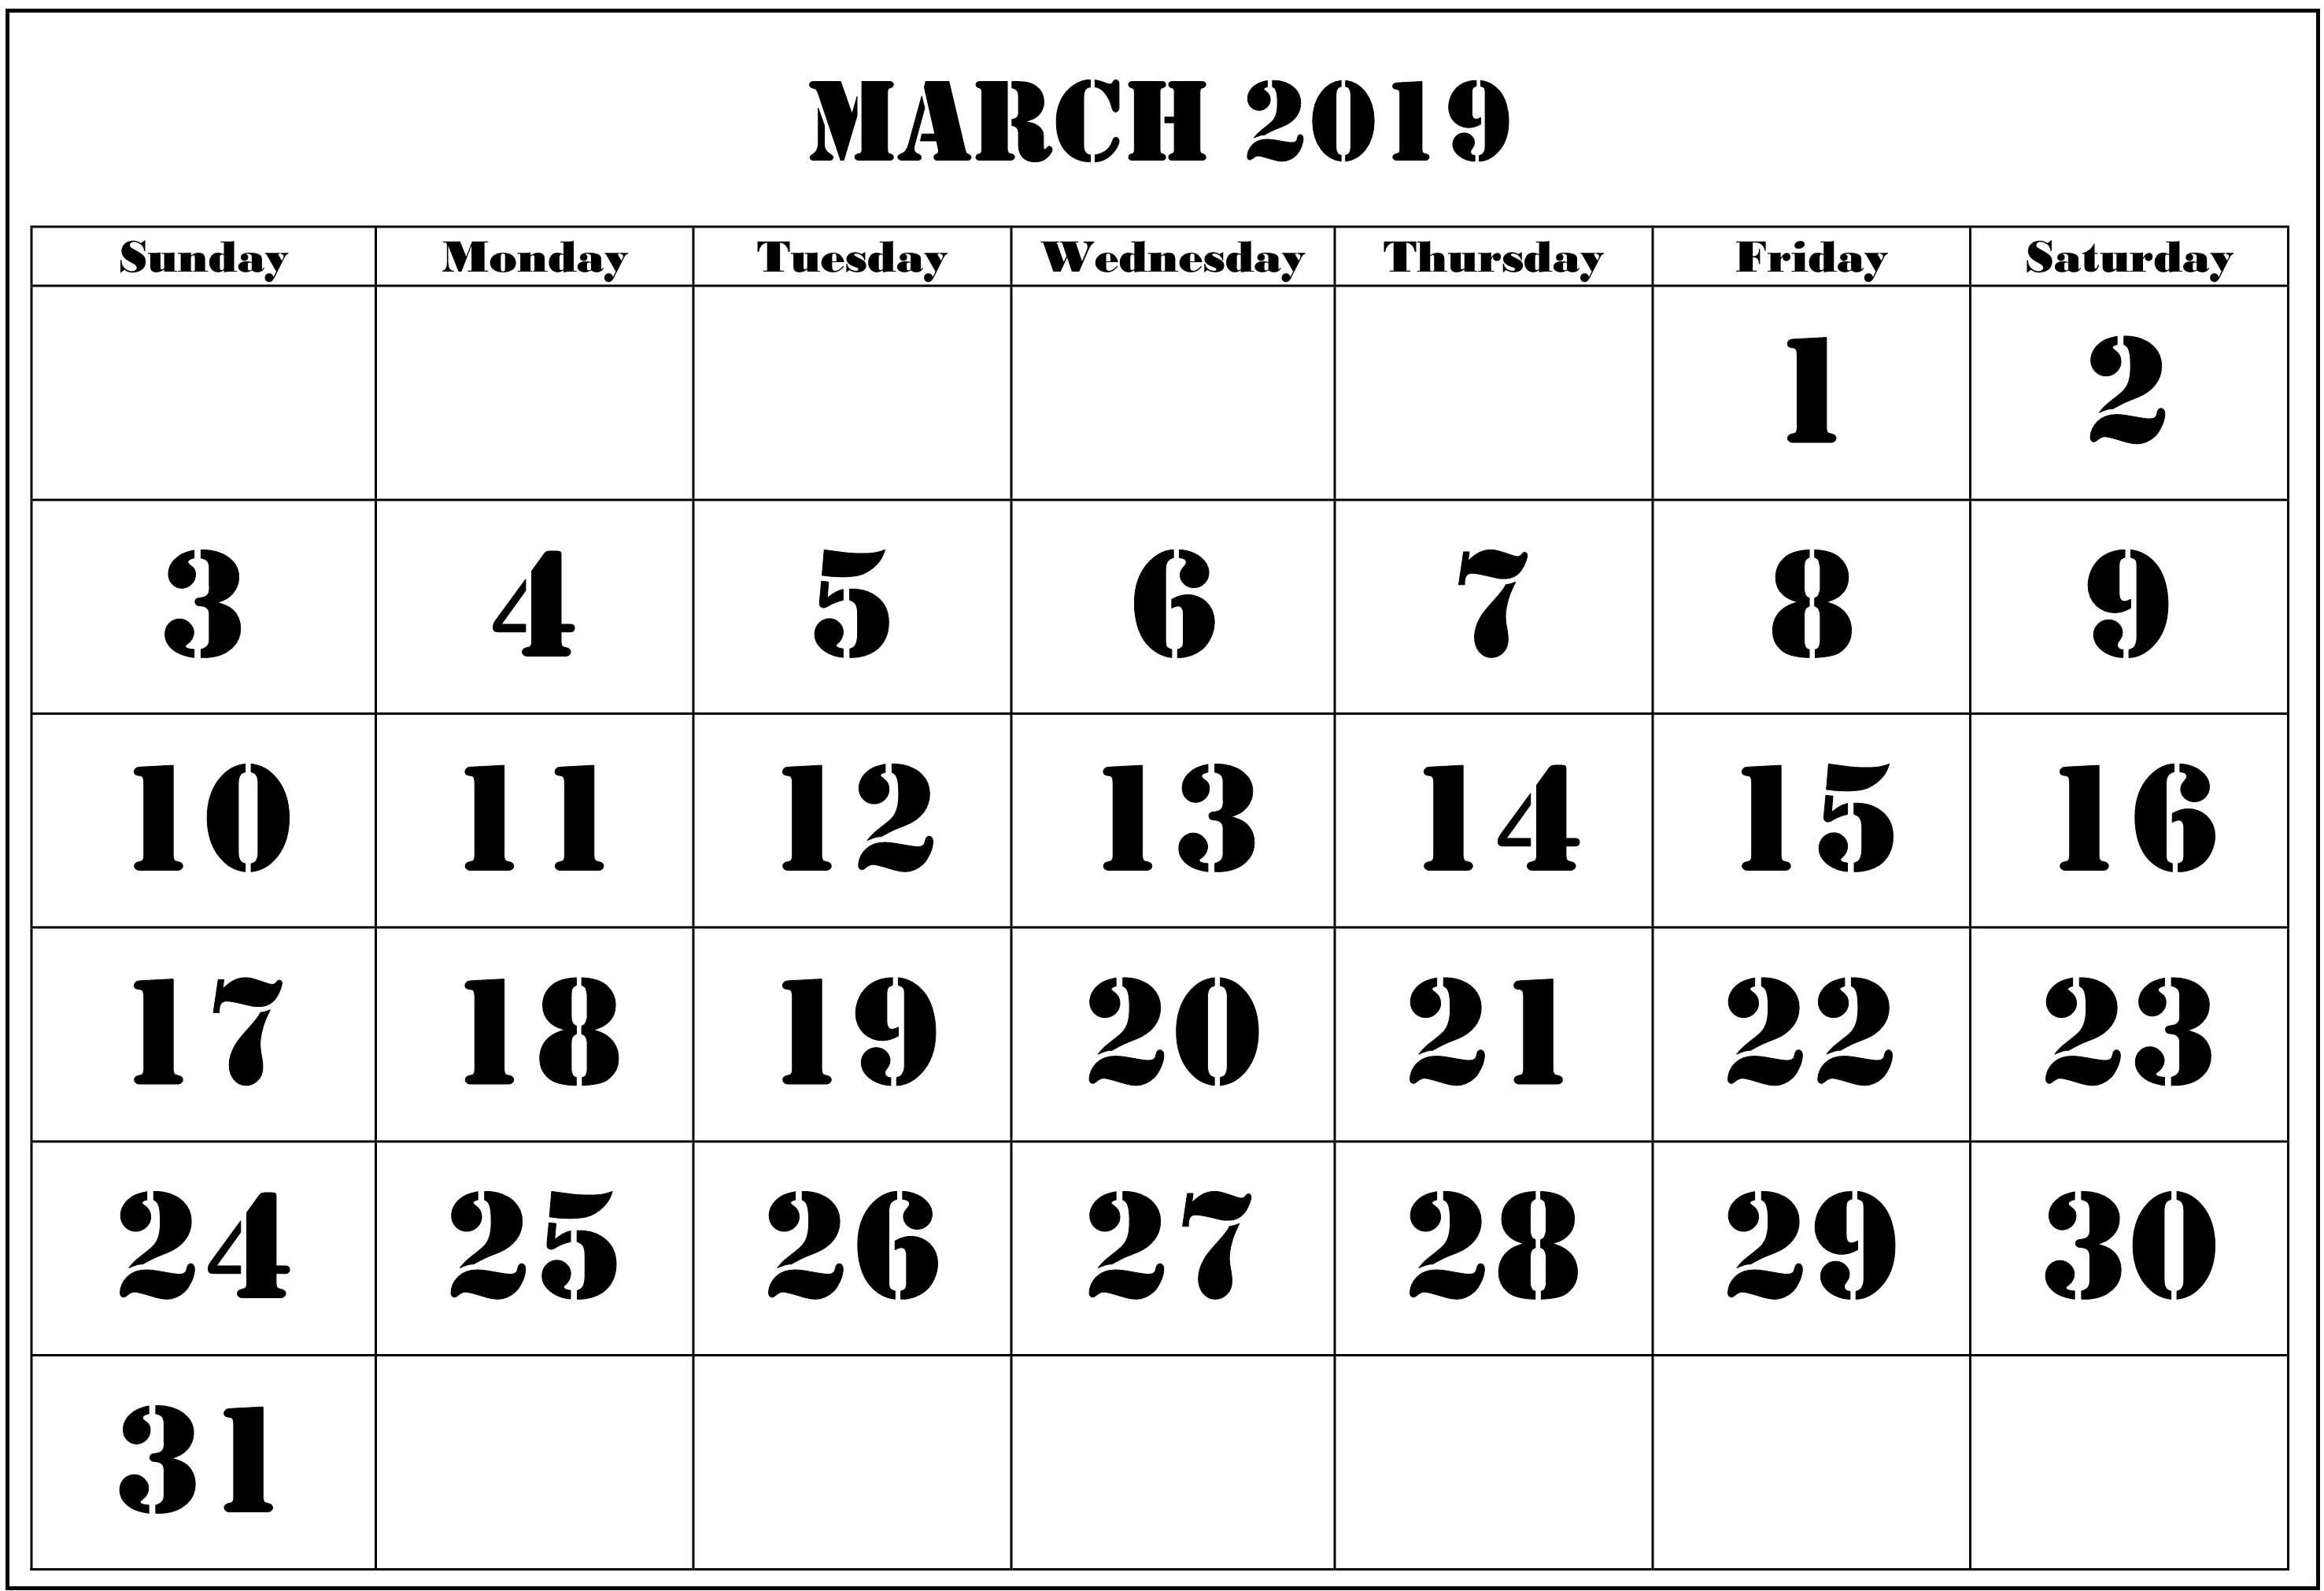 March Holiday Calendar 2019 Más Caliente Free March 2019 Calendar with Holidays Blank Calendar 2019 Of March Holiday Calendar 2019 Mejores Y Más Novedosos March 2019 Calendar Printable with Holidays